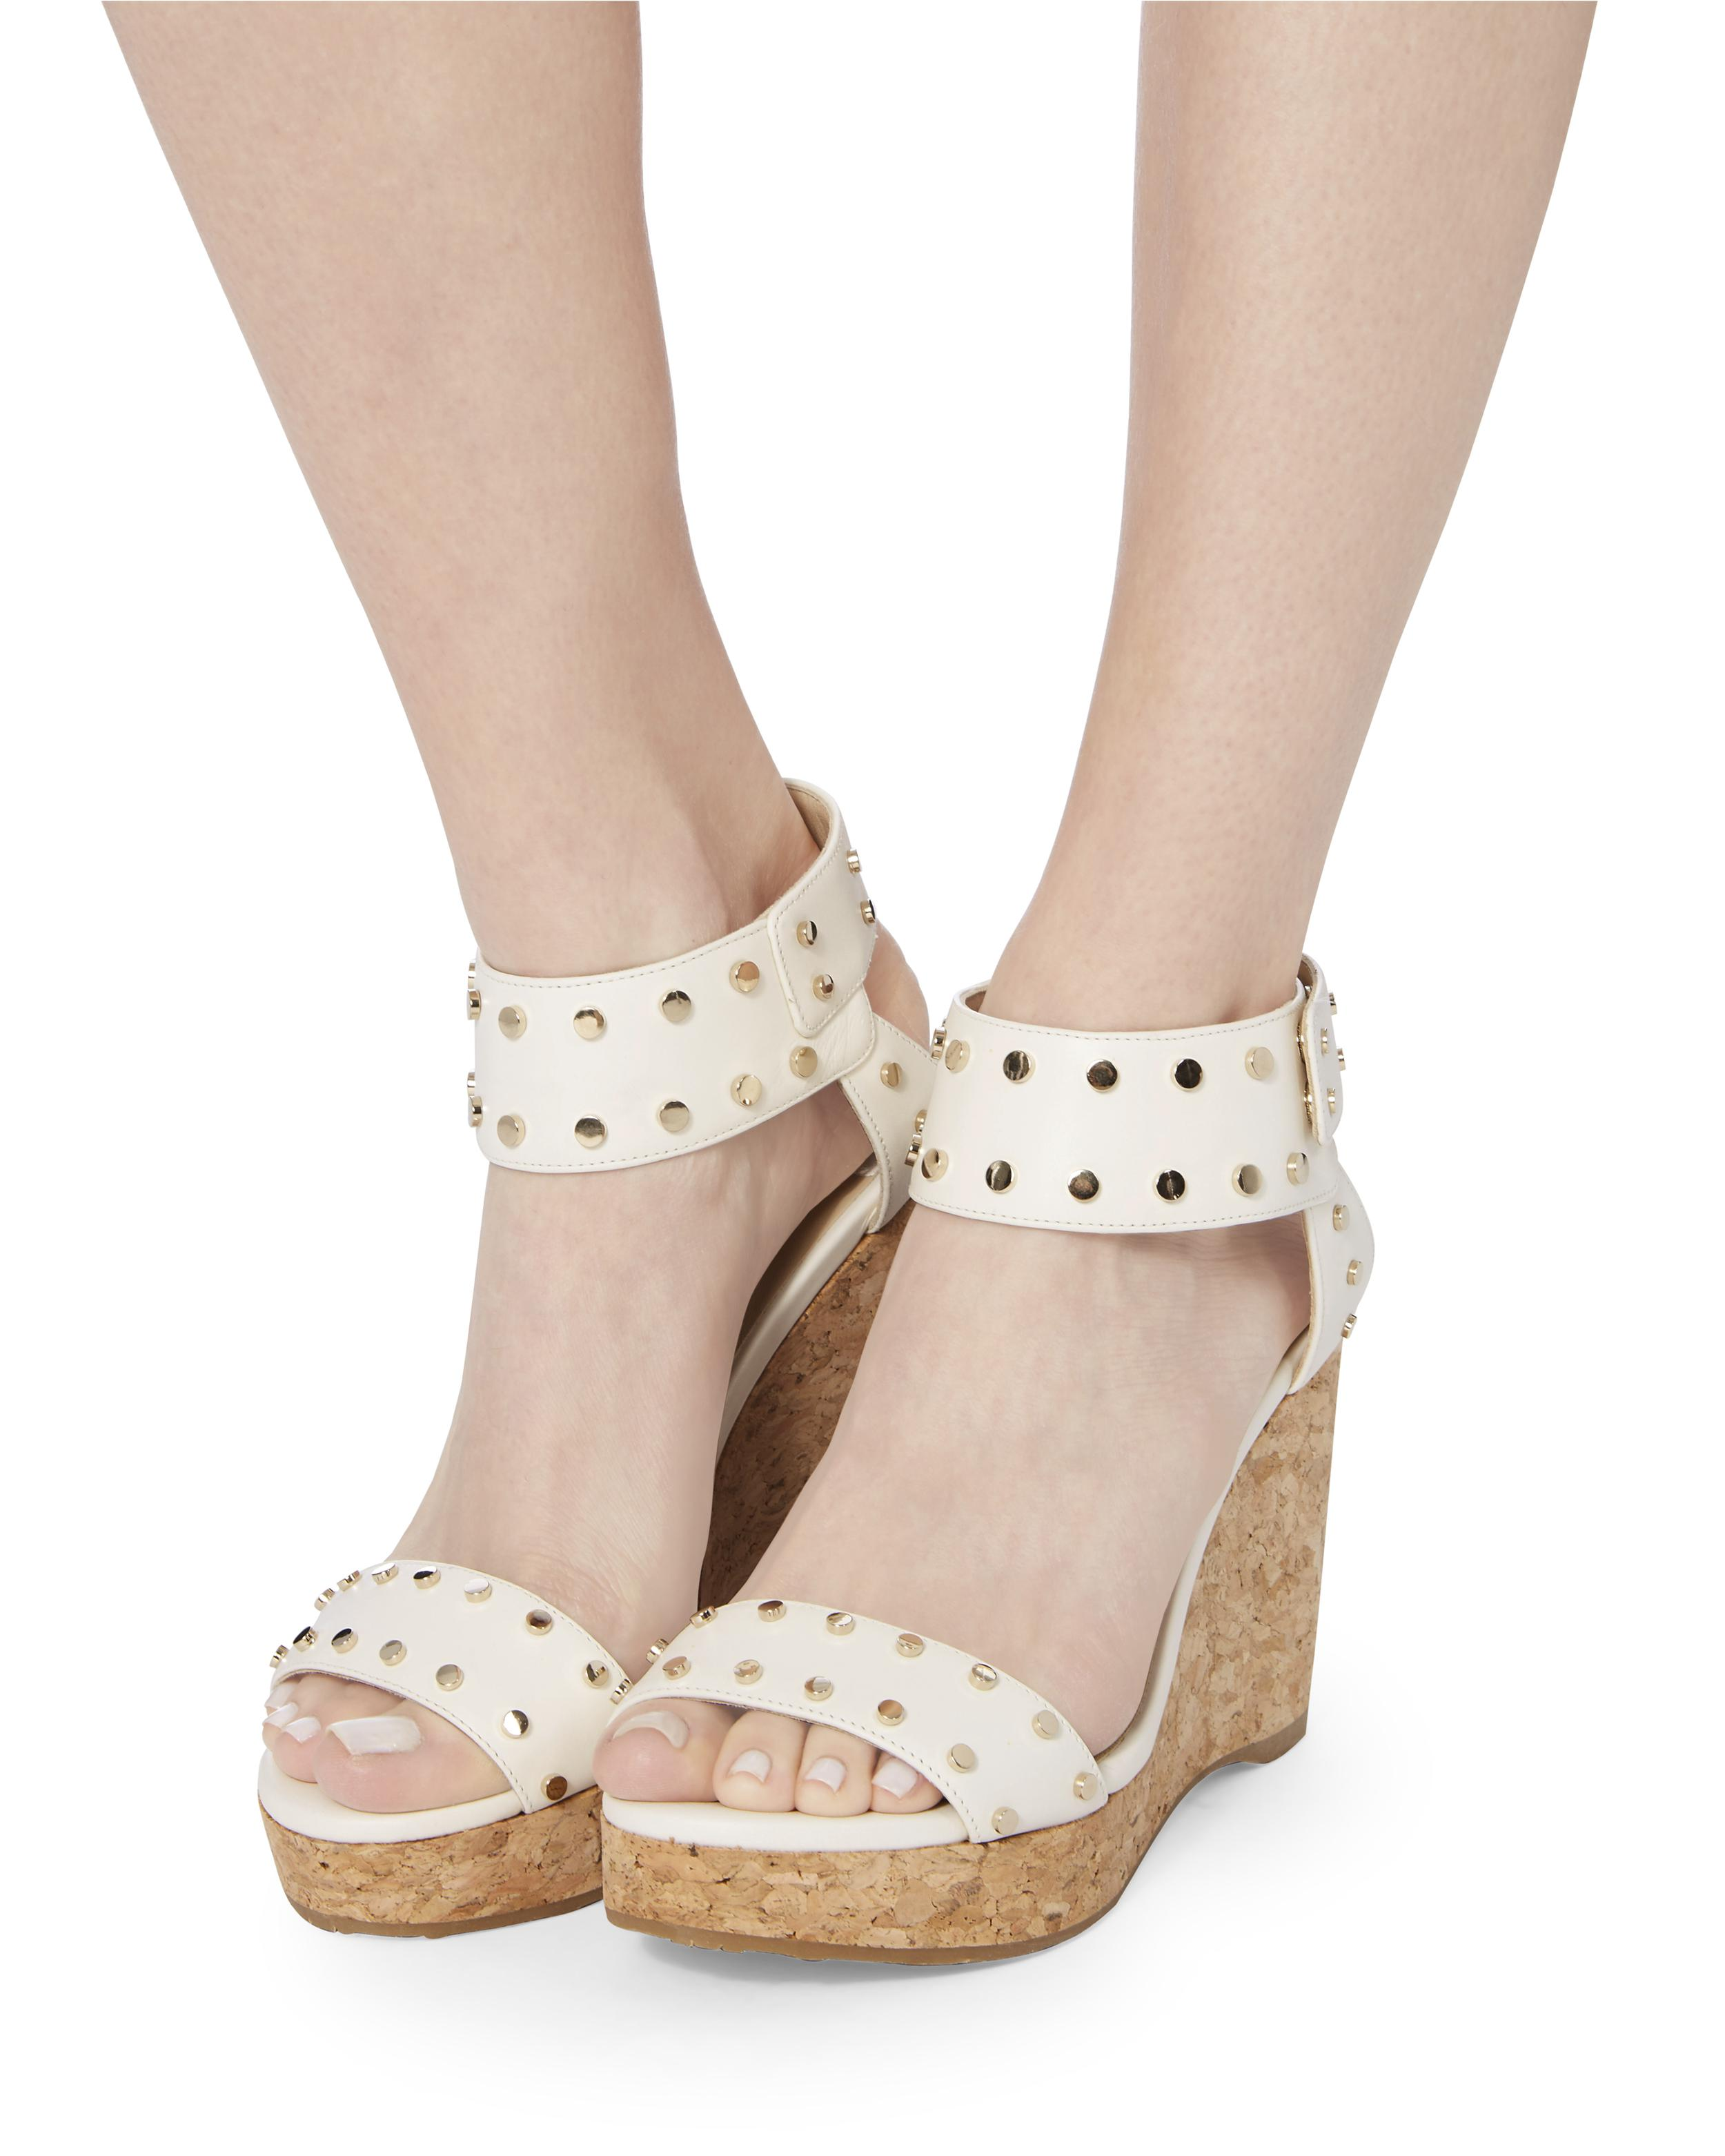 8378651b3faa Lyst - Jimmy Choo Nelly Leather Wedge Sandals in White